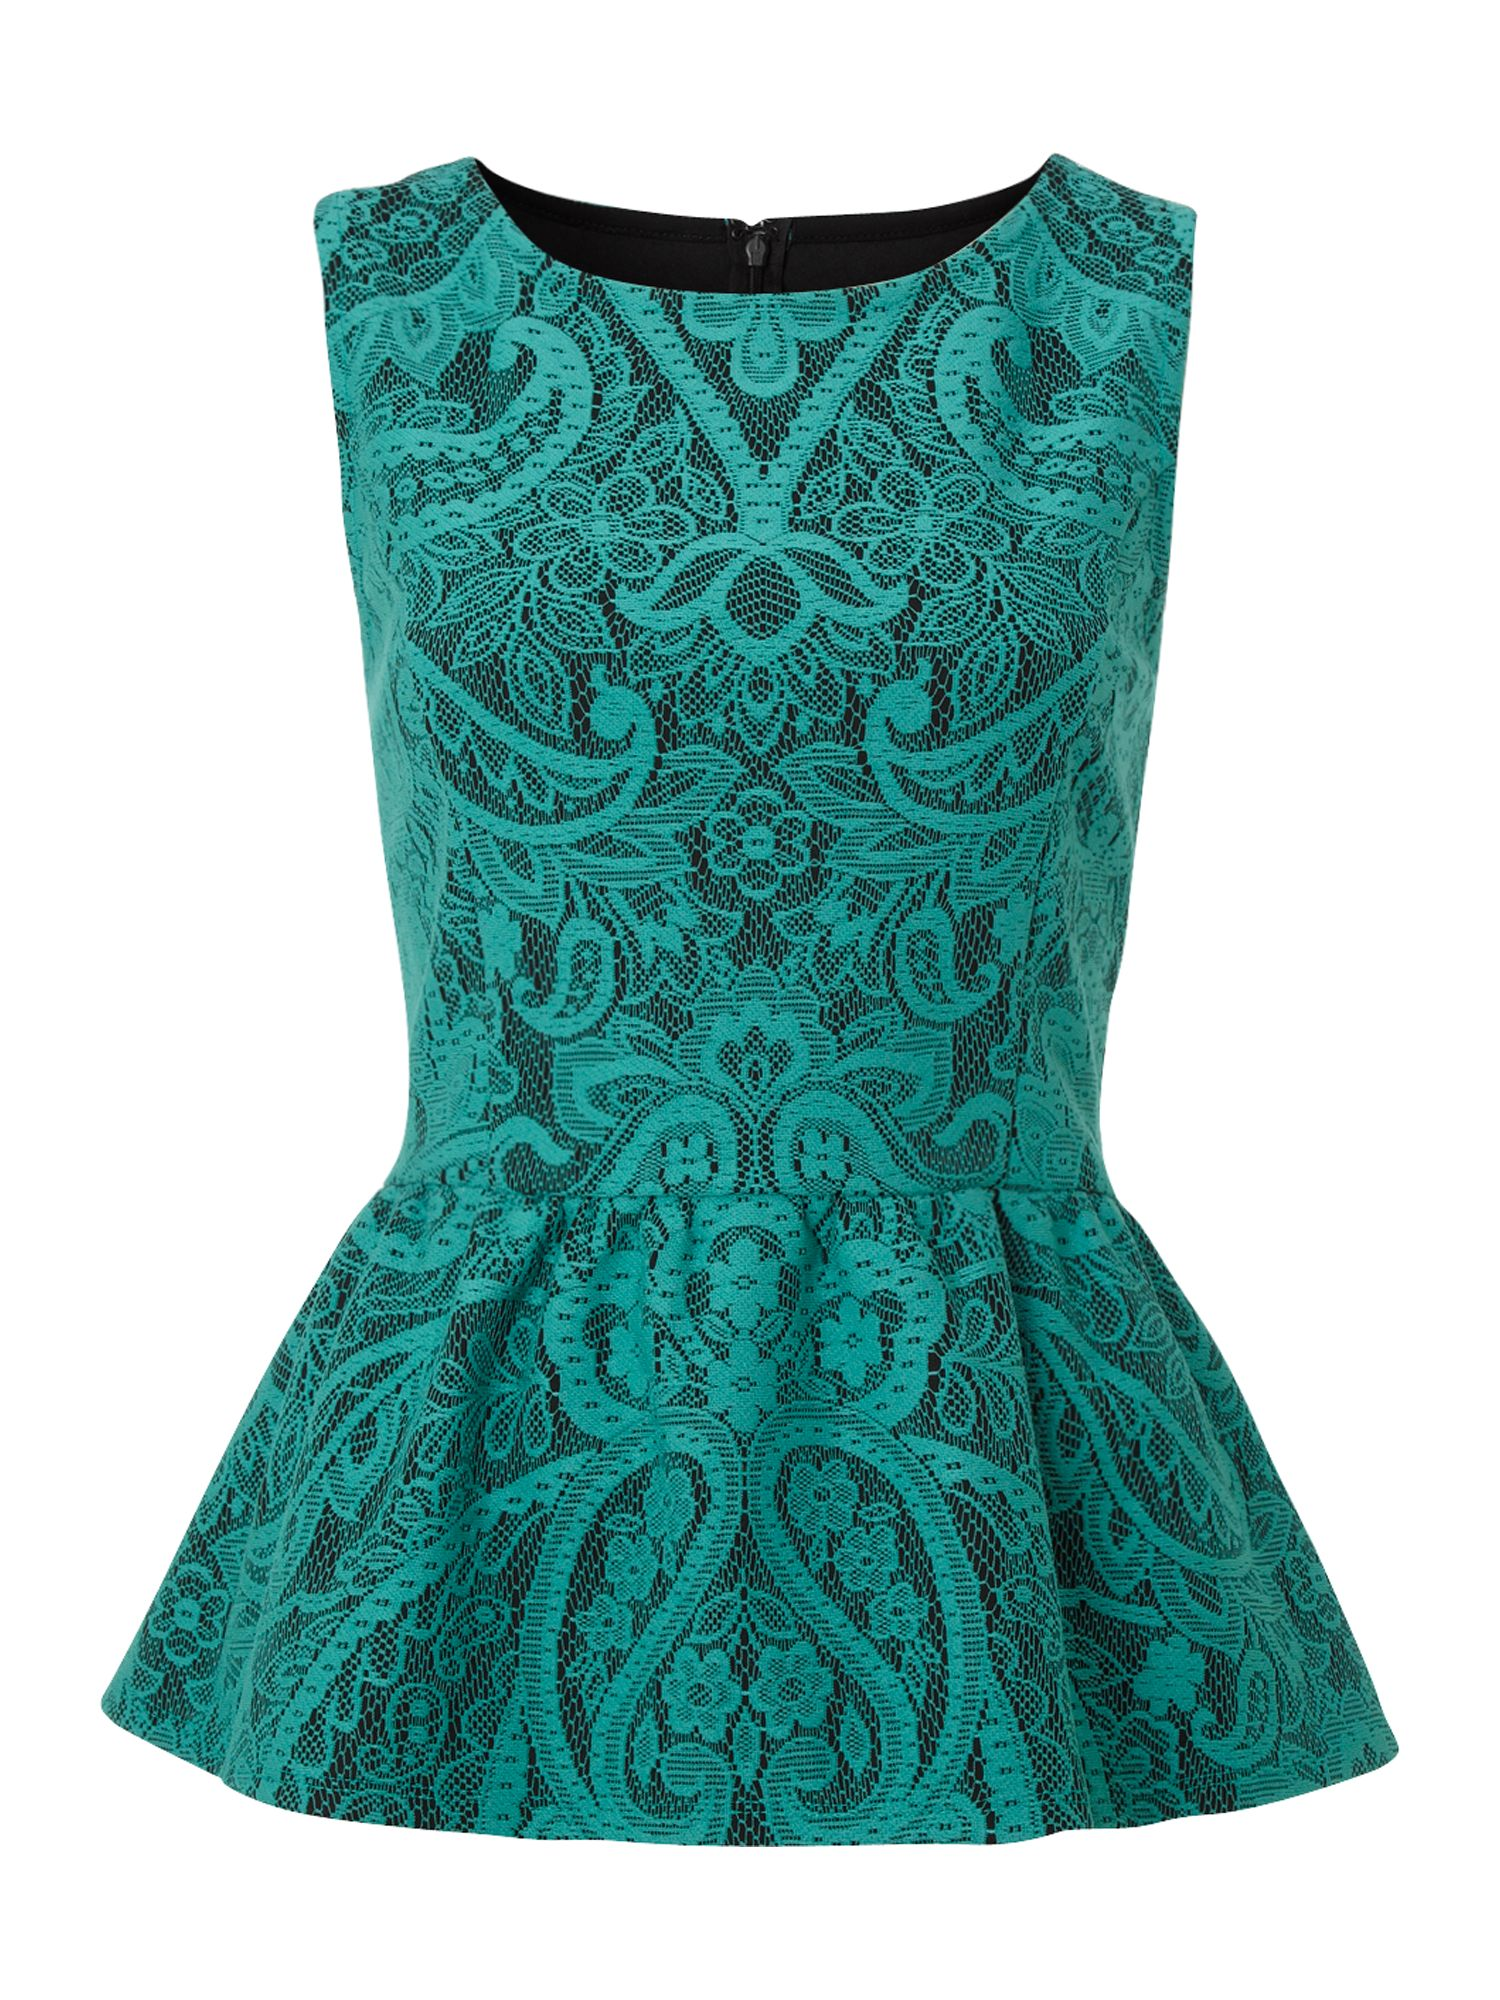 Therapy Bonded Lace Peplum Top in Blue (green) | Lyst